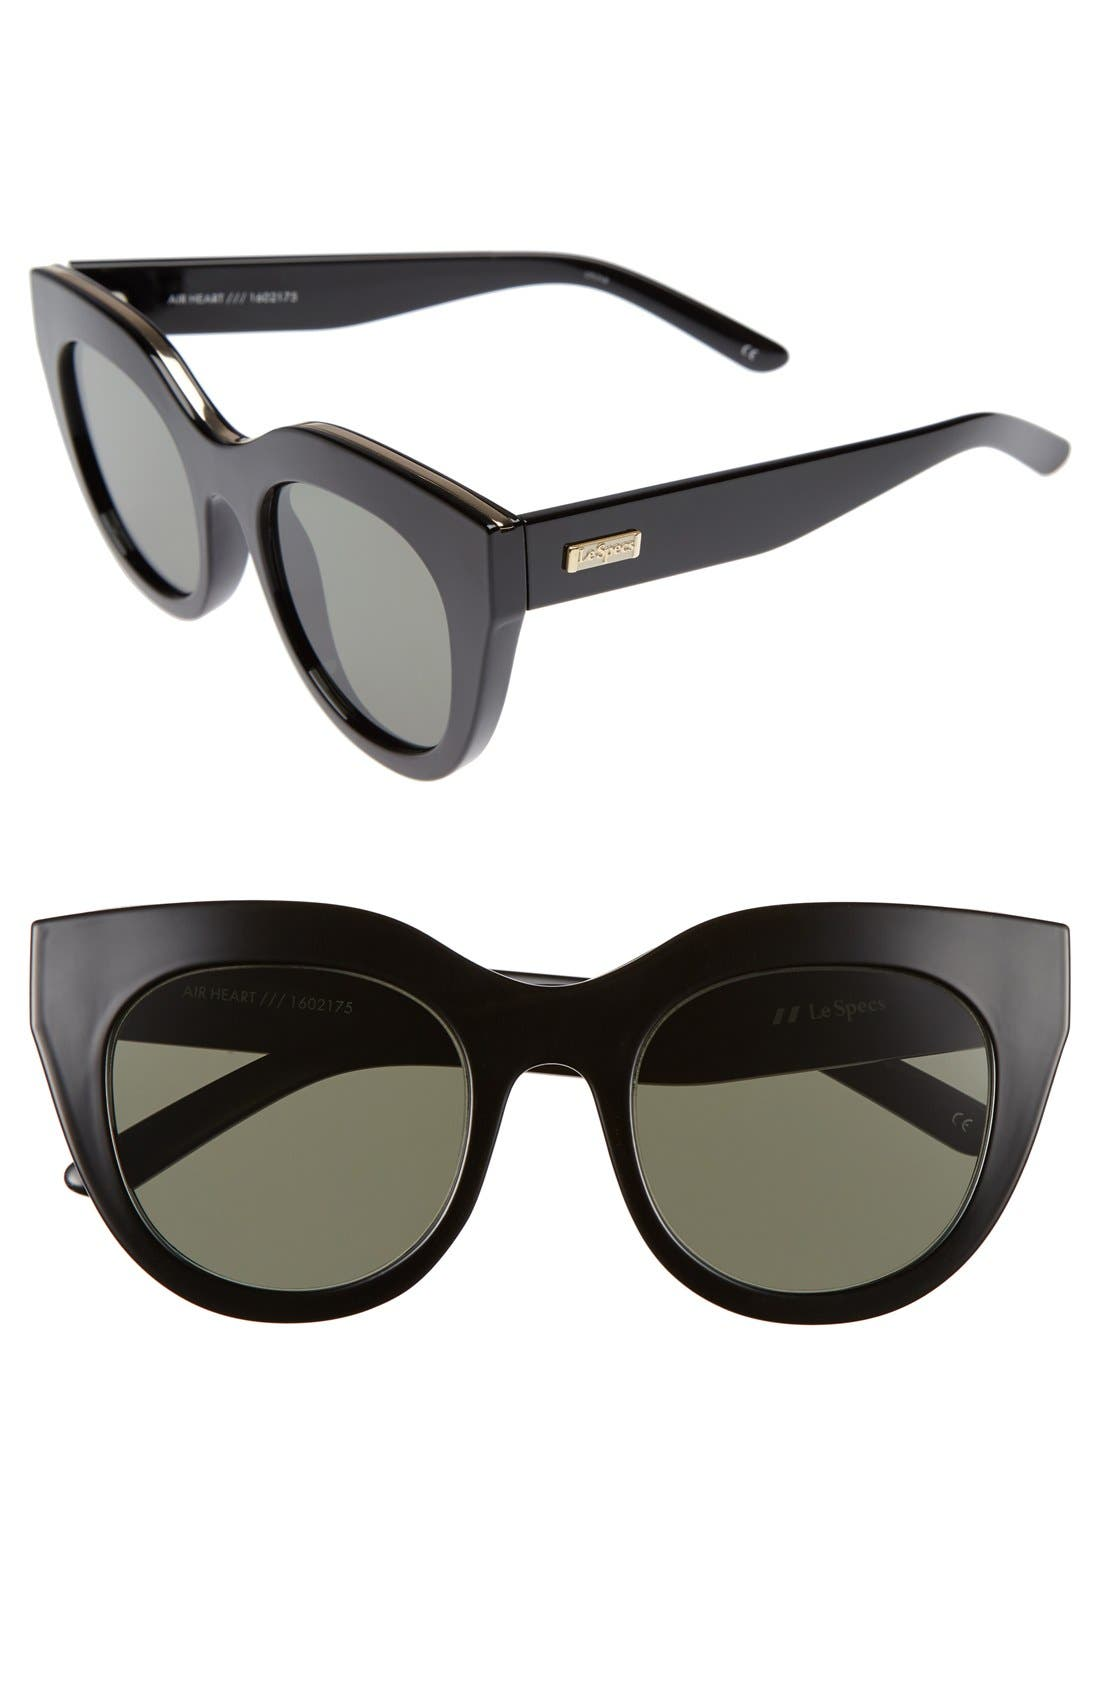 63fa901bd3c71 Le Specs Sunglasses for Women